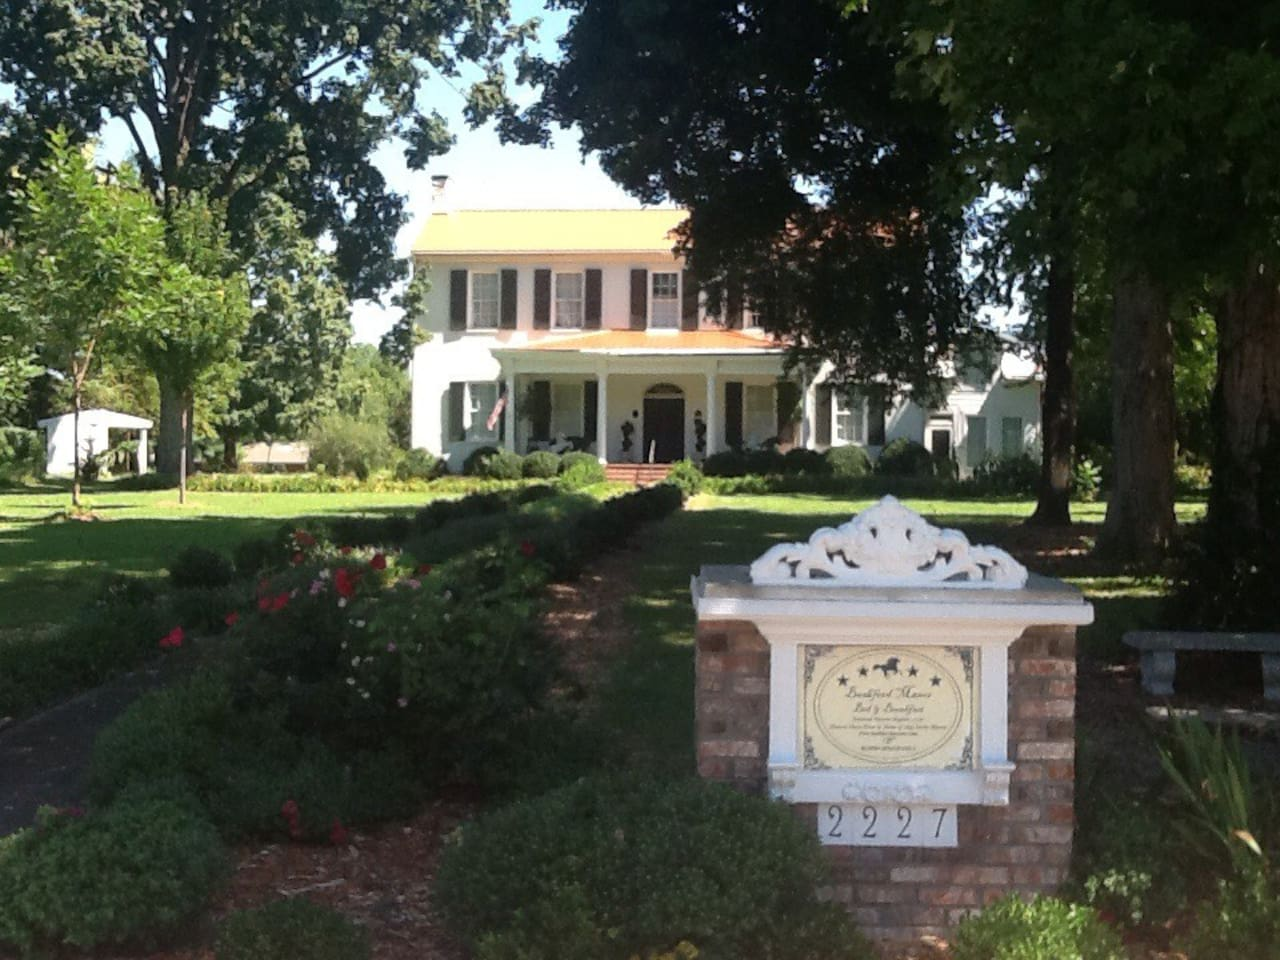 Welcome!!! To The 1796 Bashford Manor, Carriage House and Garden Suite: historic fun with all amenities: private bath&kitchenette, wifi, cable, laundry facilities, private parking, all on this quiet acreage in the center of Metro Louisville!